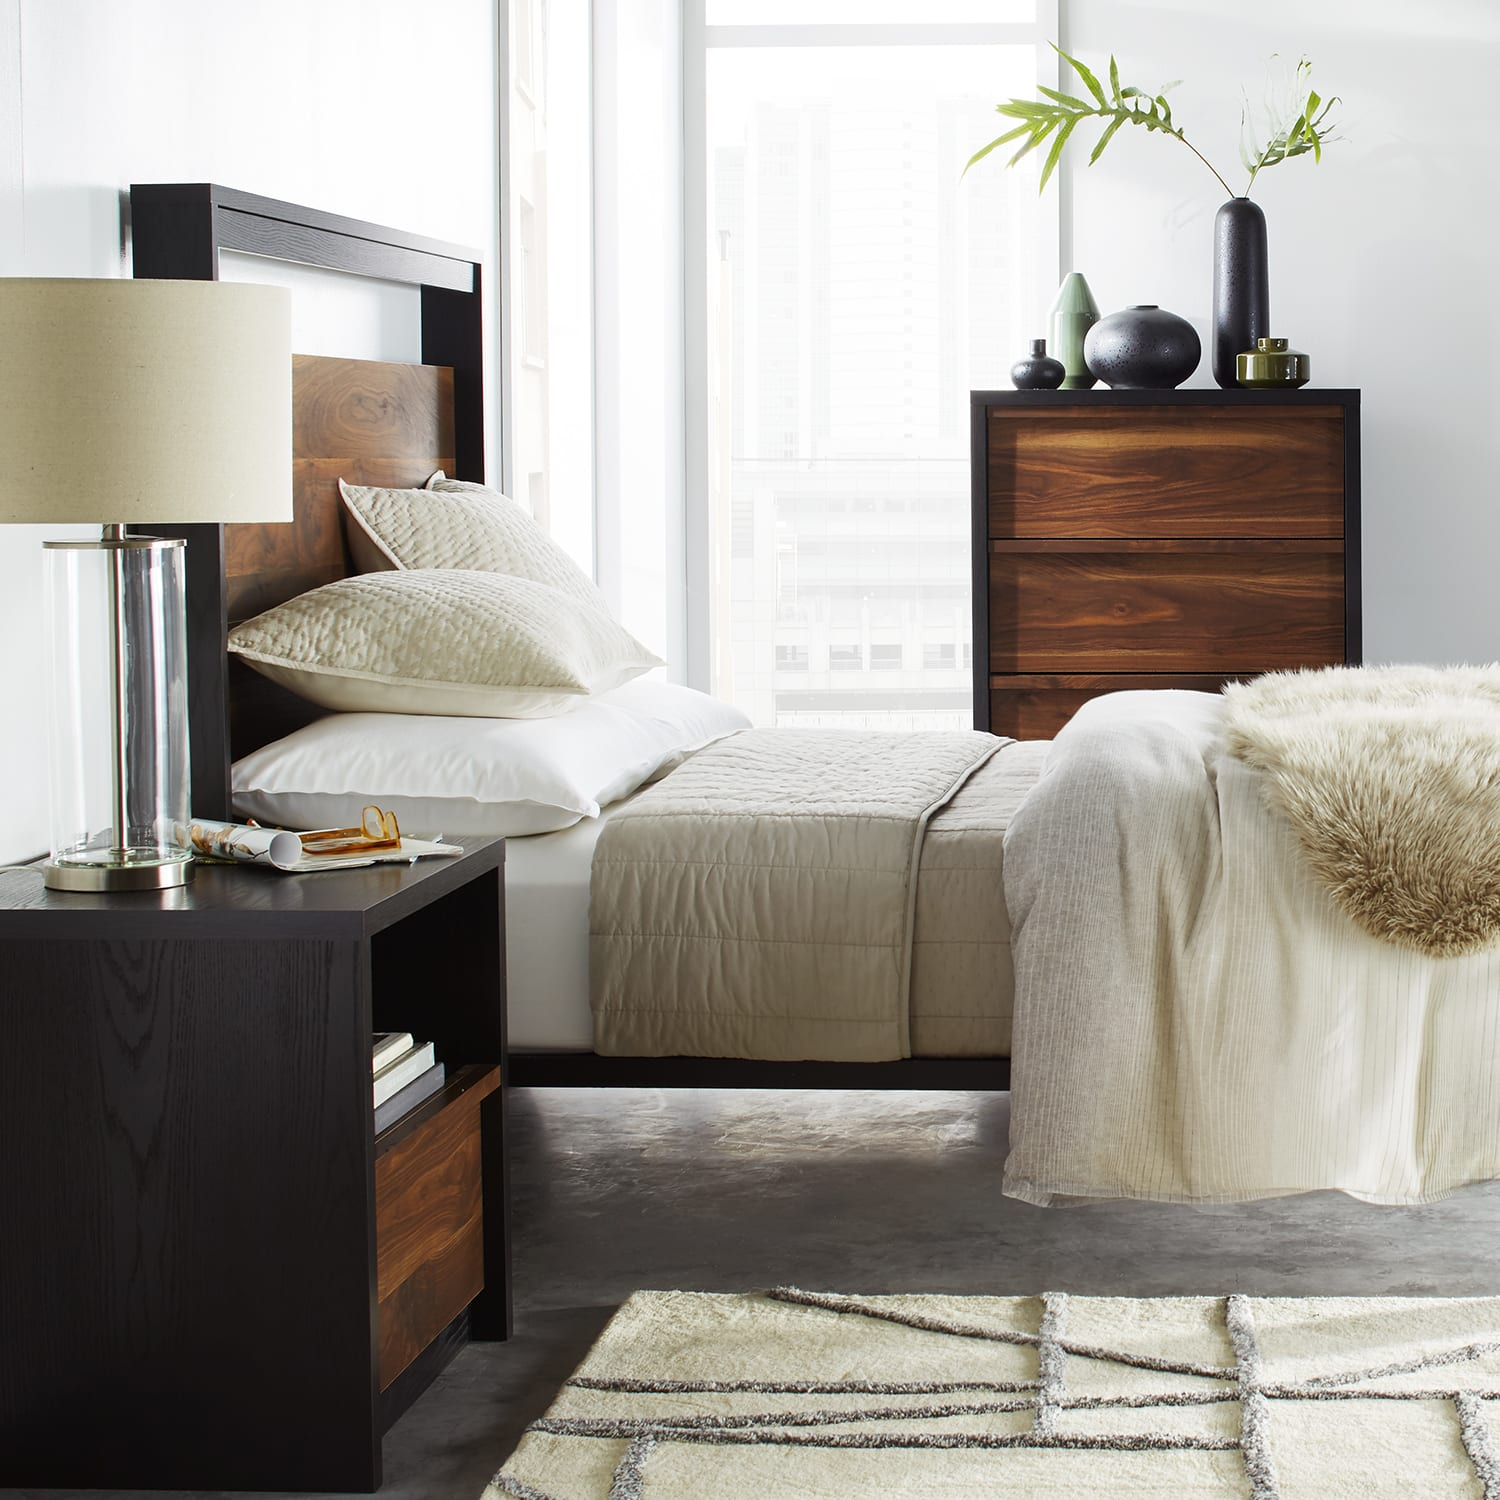 Target Home Category / Selected Images